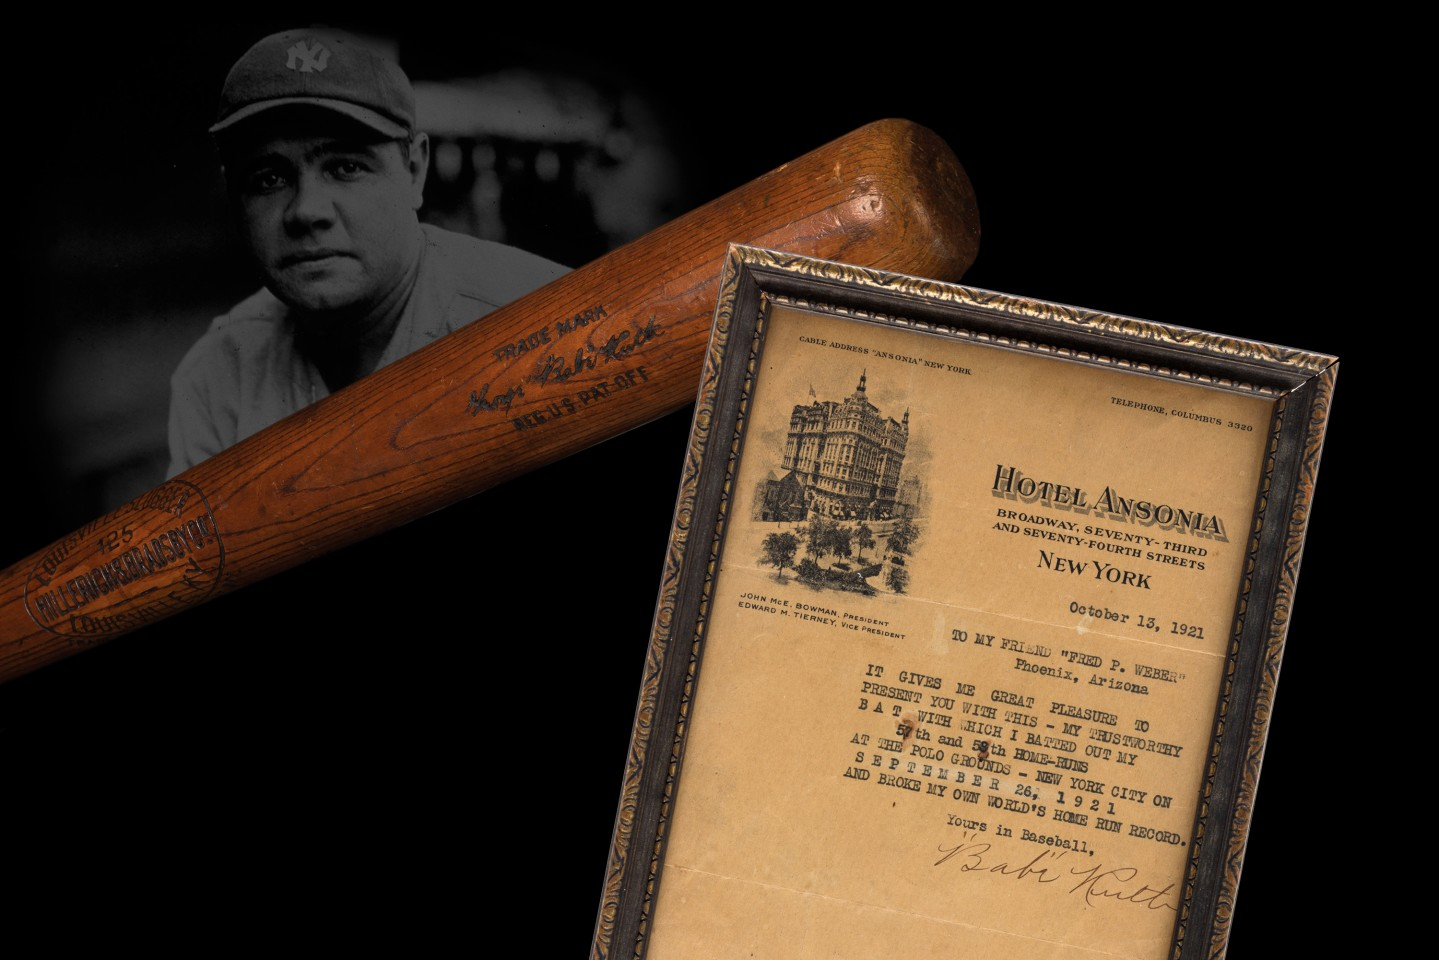 Babe Ruth 1921 Baseball Bat | Auction House: Heritage Auctions | Price fetched: $717,000 | Auctioned: February 22, 2015